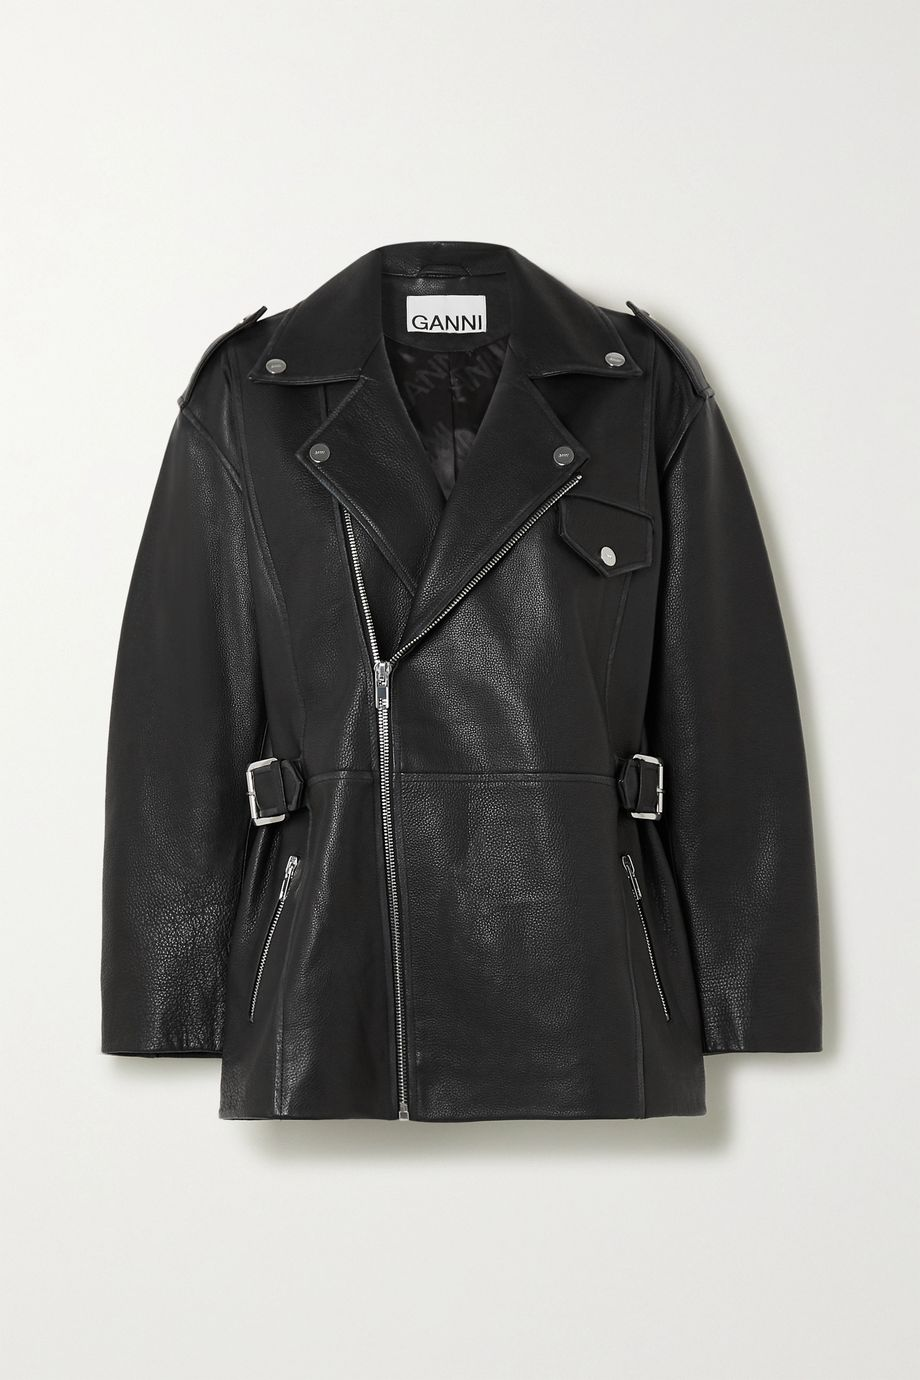 GANNI Oversized textured-leather biker jacket